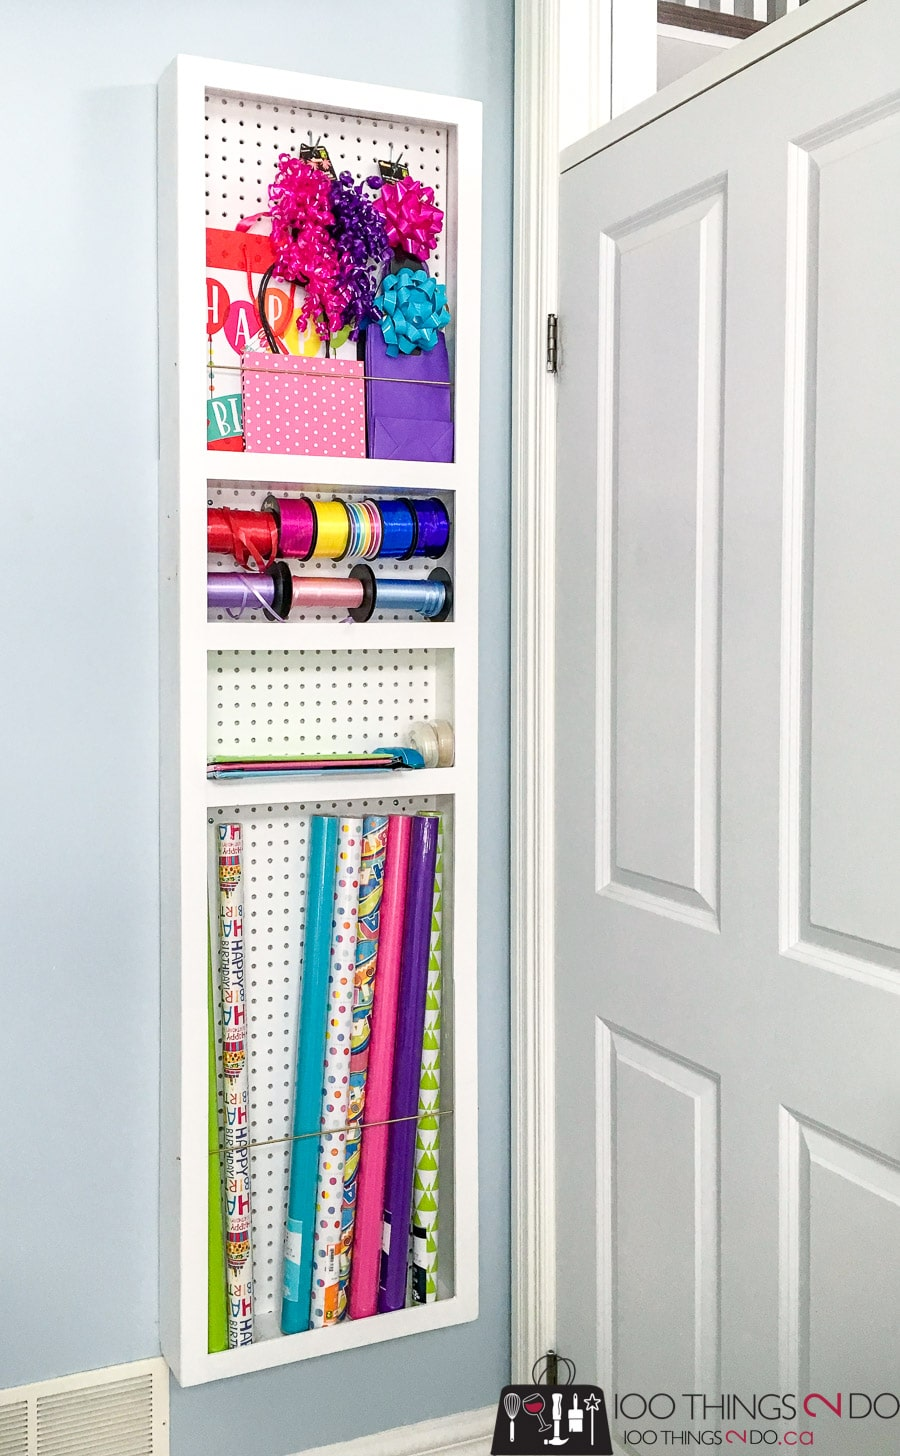 How to build a DIY behind-the-door gift wrap storage shelf